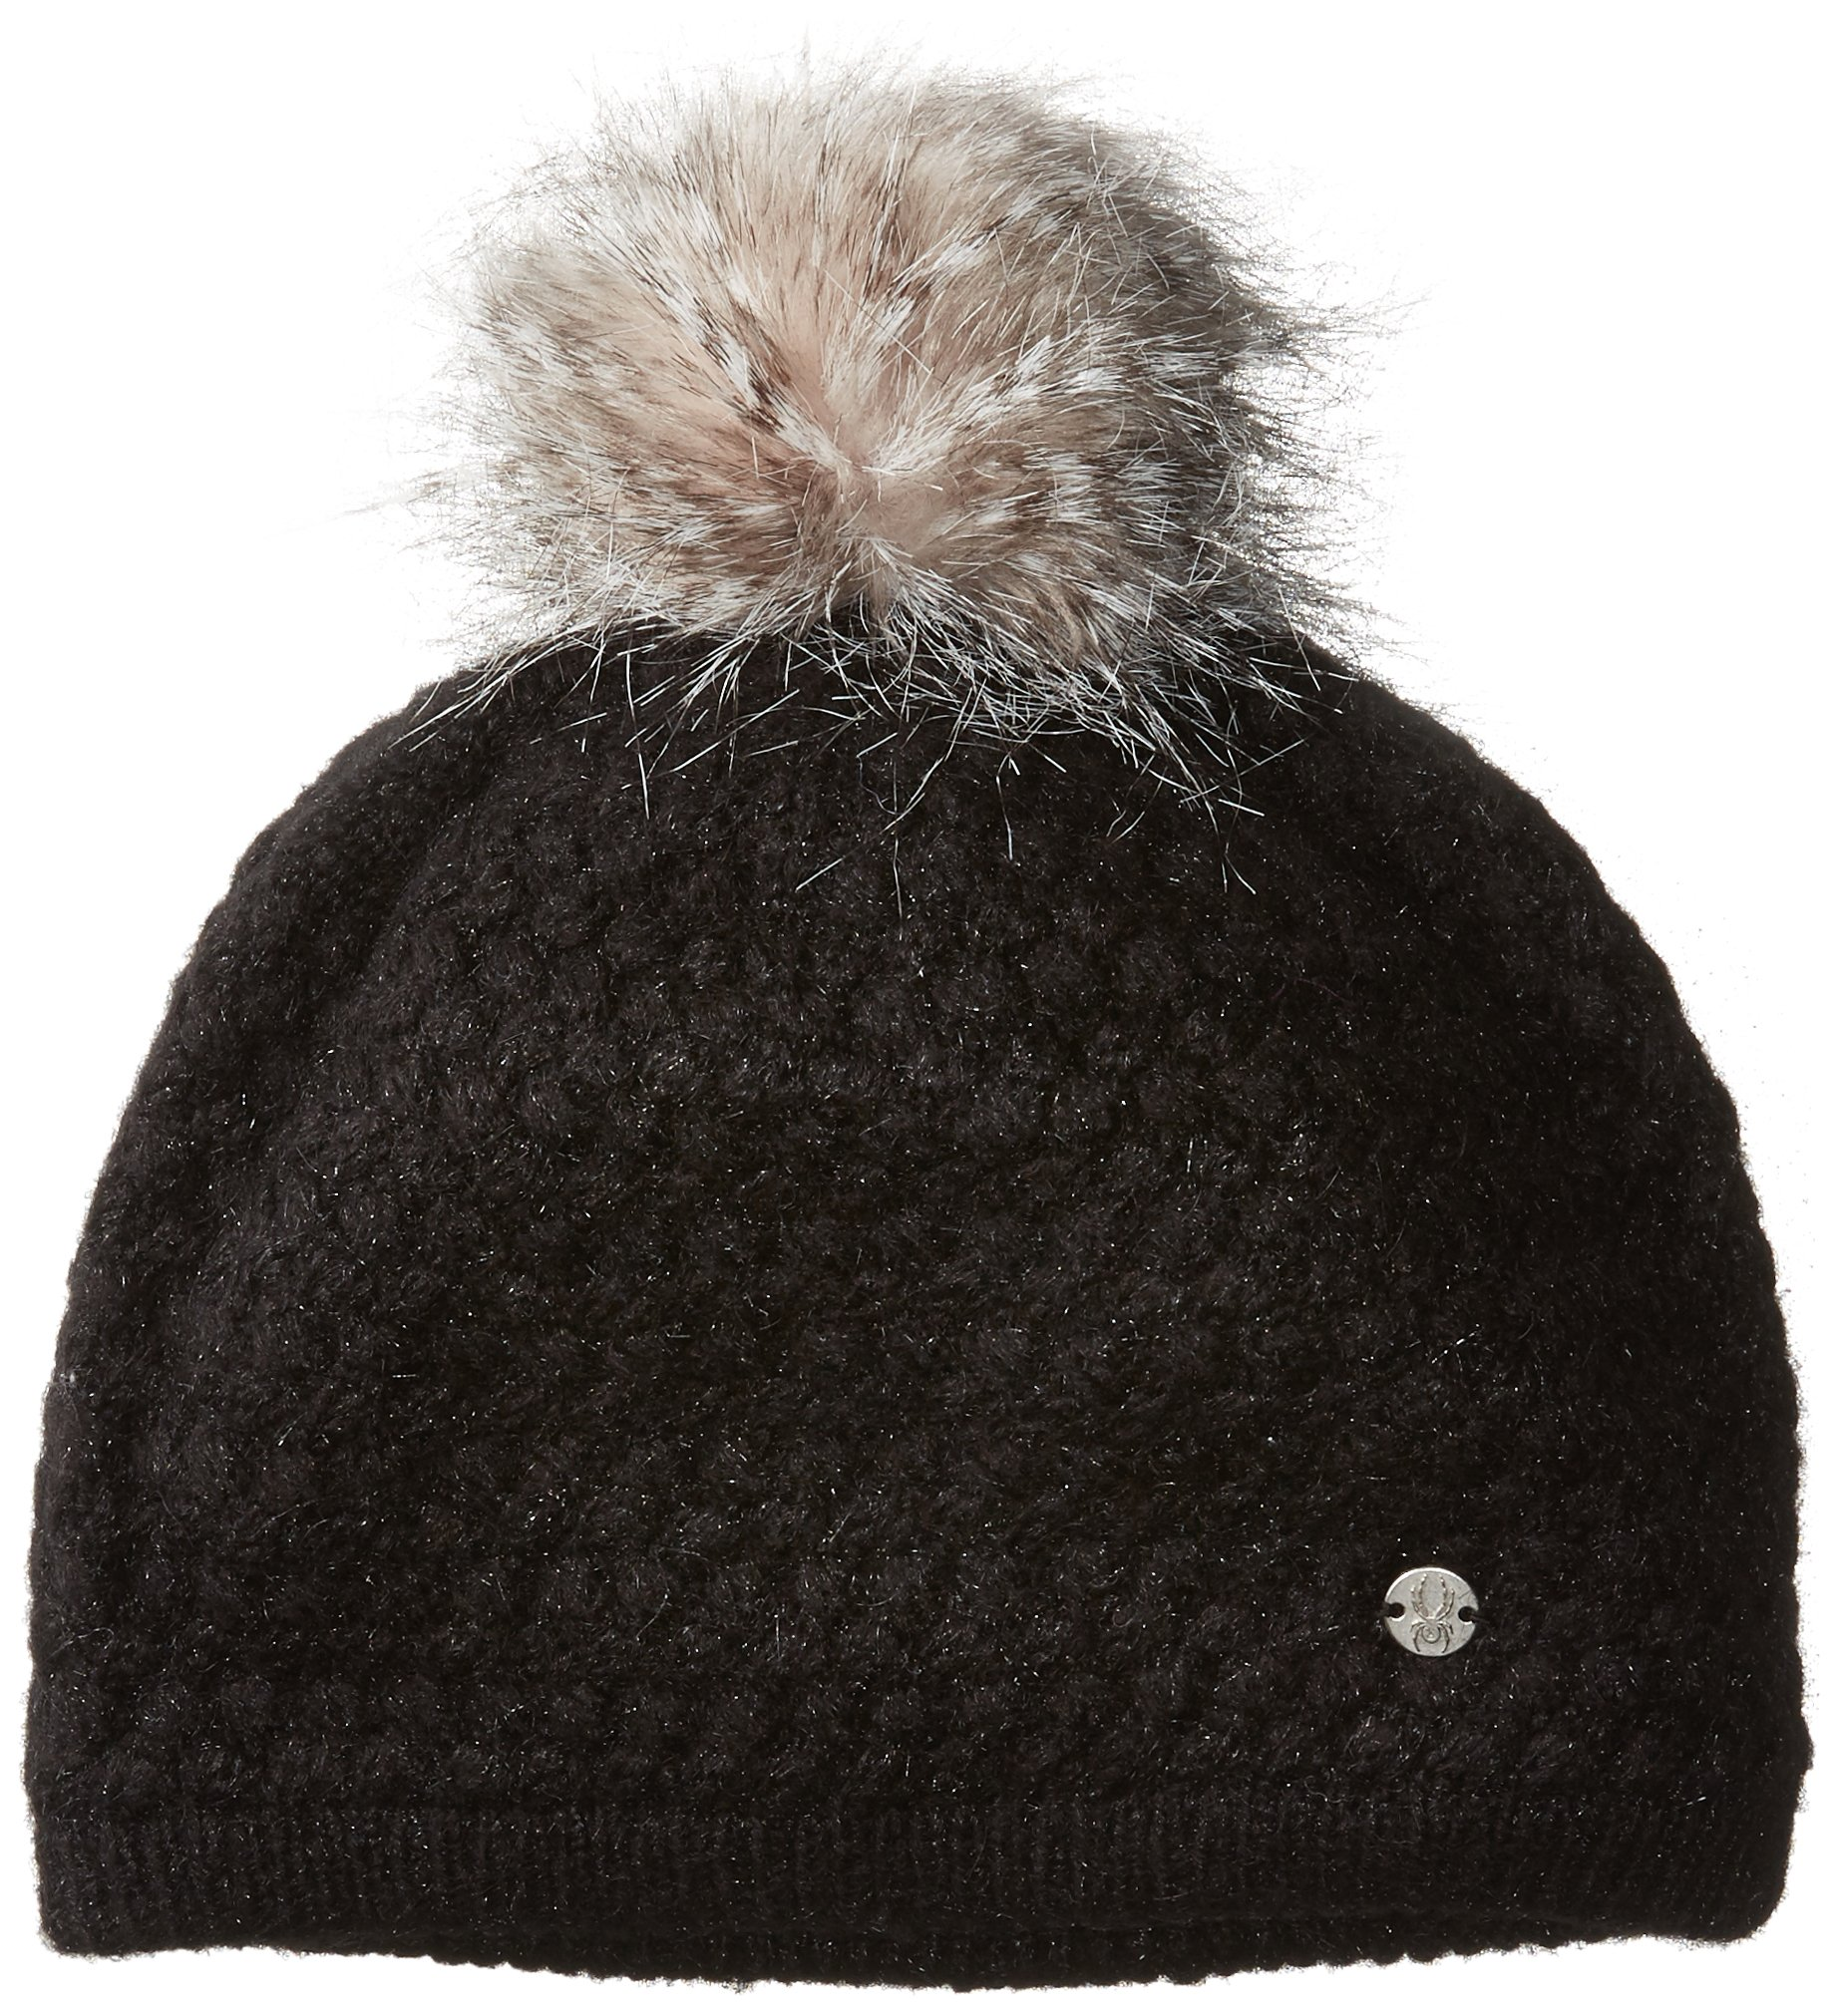 Spyder Women's Icicle Hat, Black/Silver, One Size